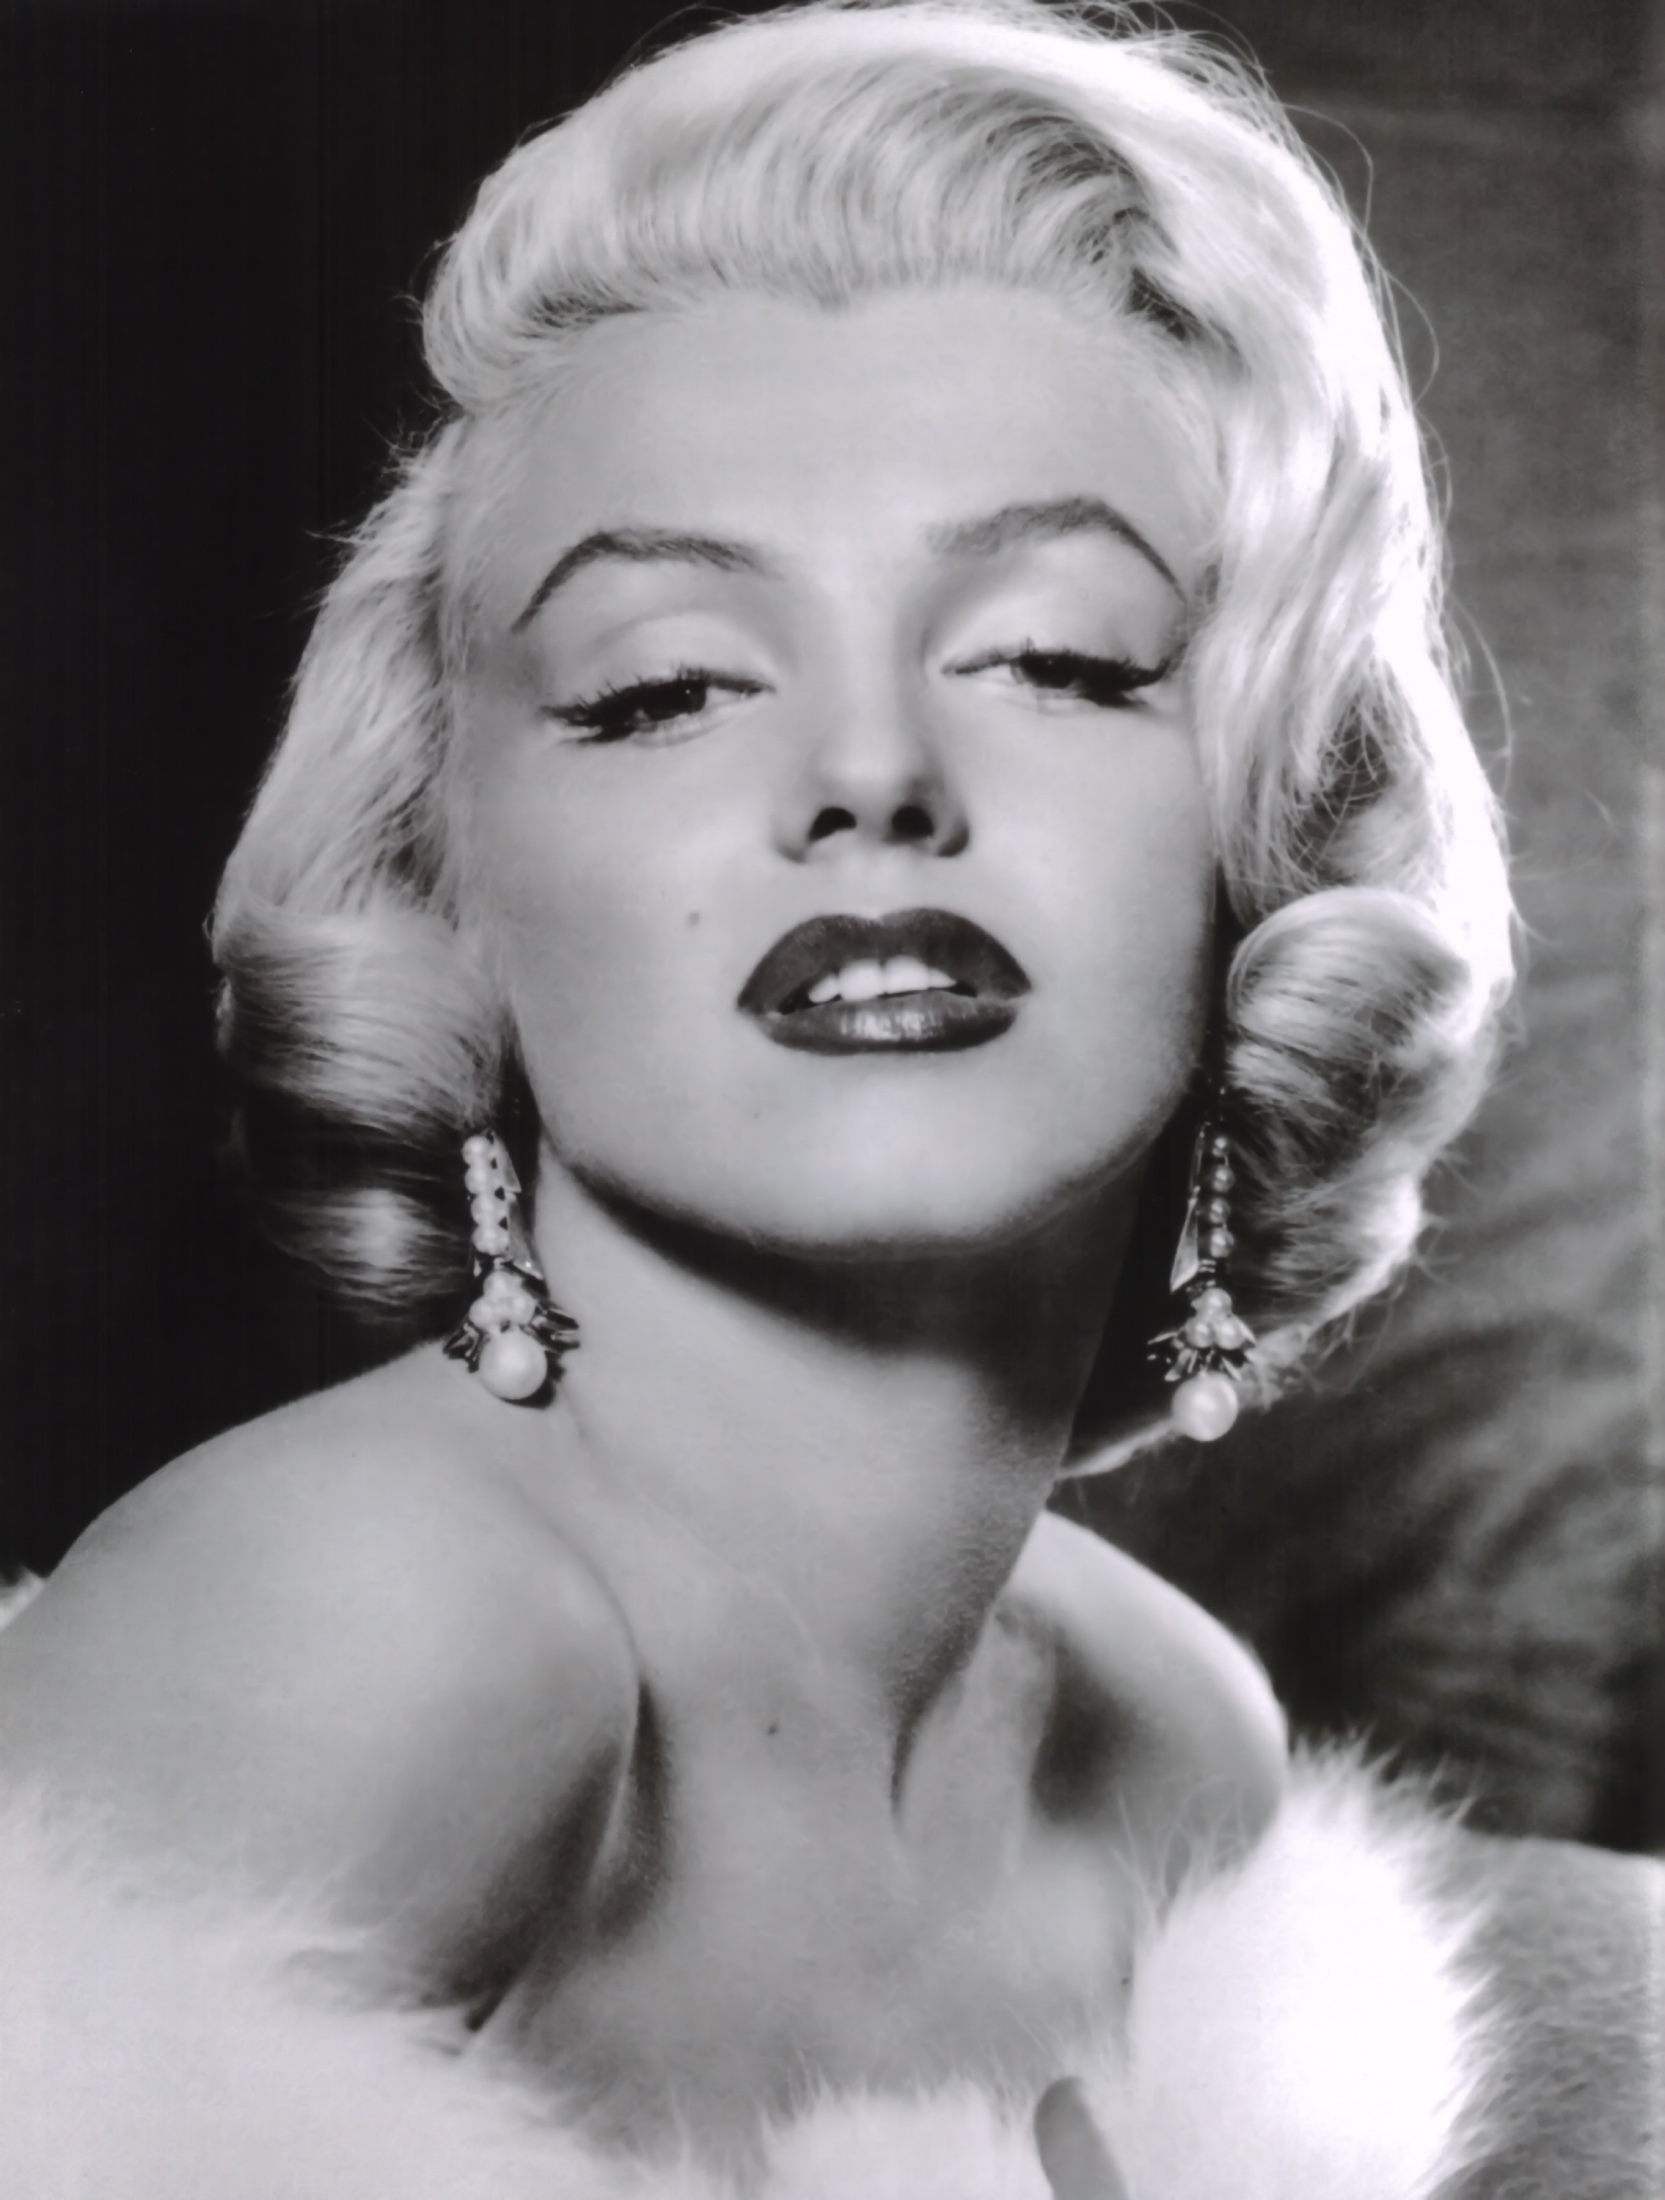 Old Hollywood Glamour OLD HOLLYWOOD GLAMOUR!!! Jan27. Marilyn Monroe is the quintessential figure  when it comes to pin-up models. Celebs like Christina Aguilera and Scarlett  ...